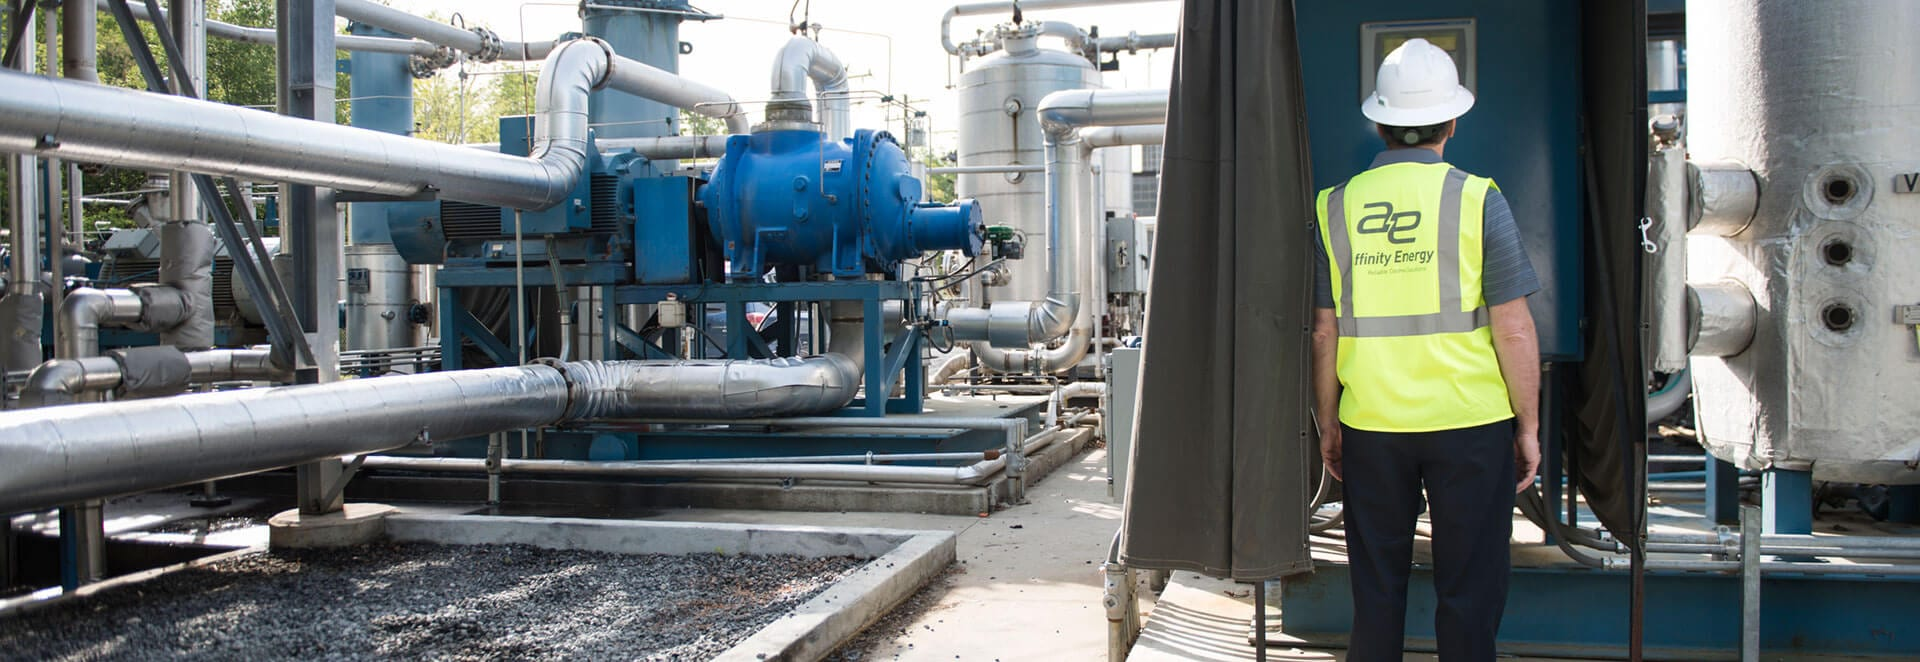 Waste to energy control systems